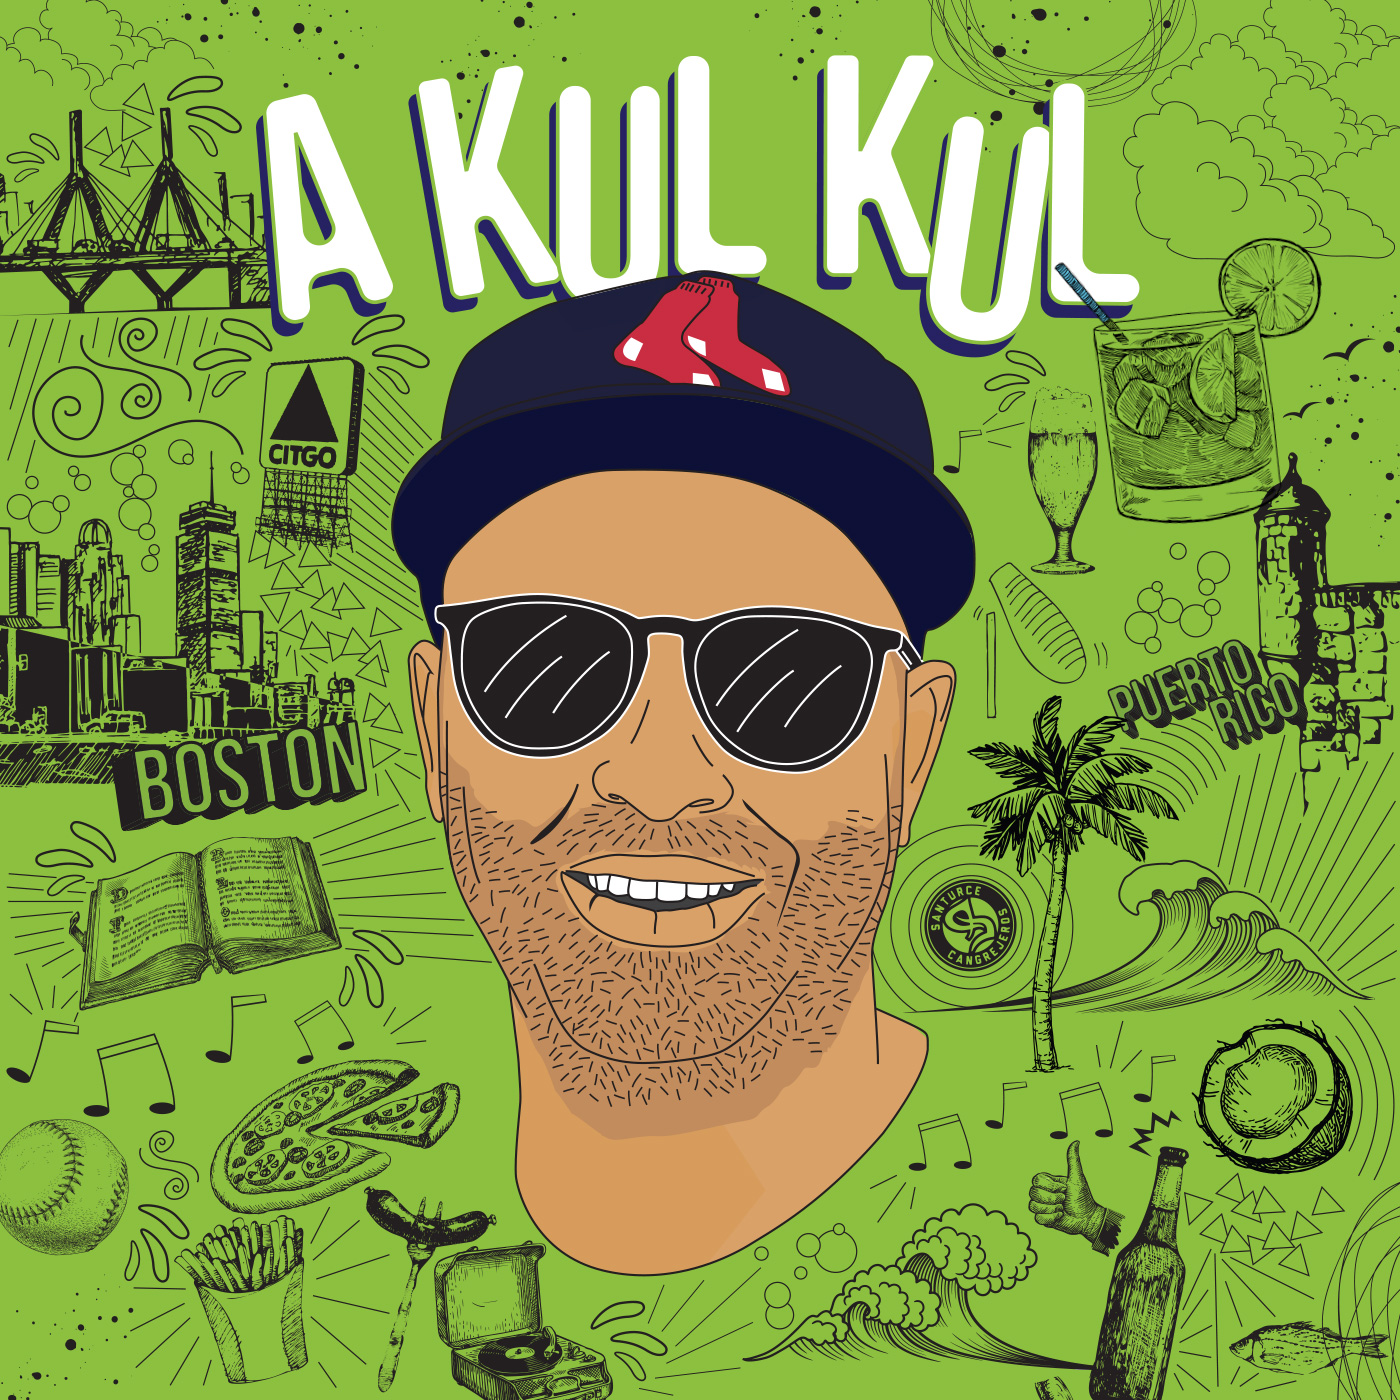 AKULKUL Podcast